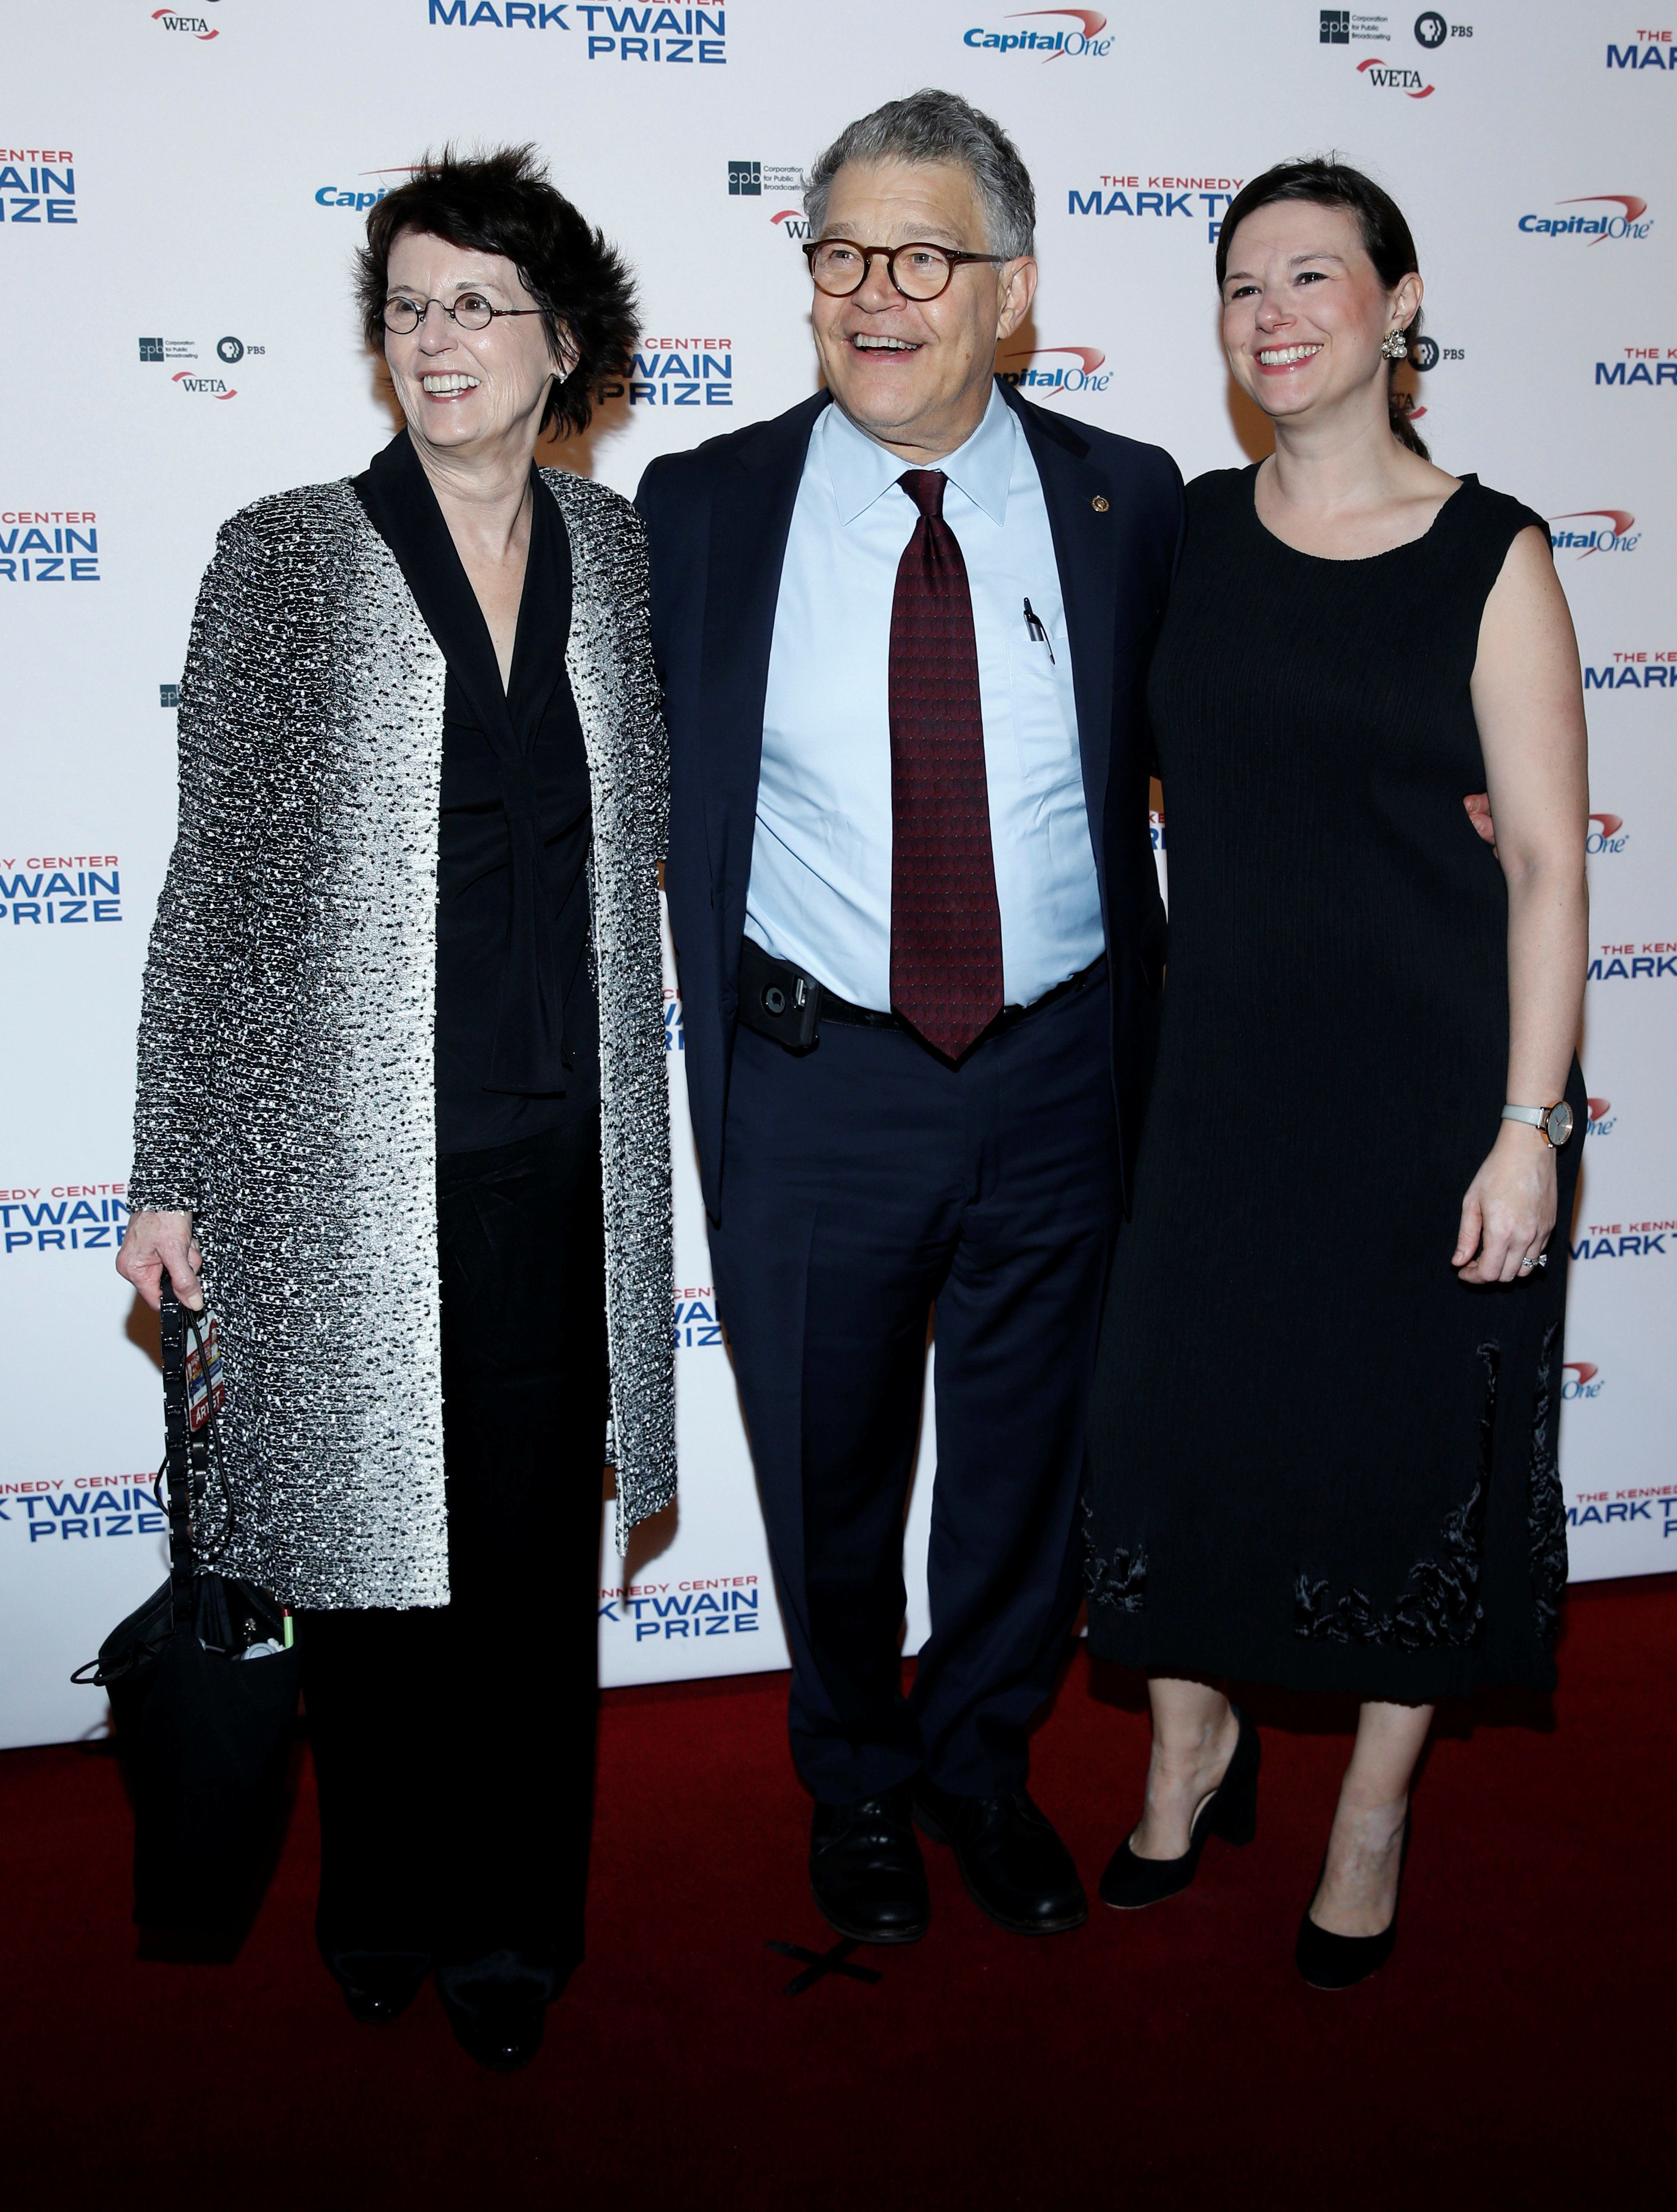 Sen. Al Franken,seen with his wife and daughter, appears at the gala honoring David Letterman in Washington last month.